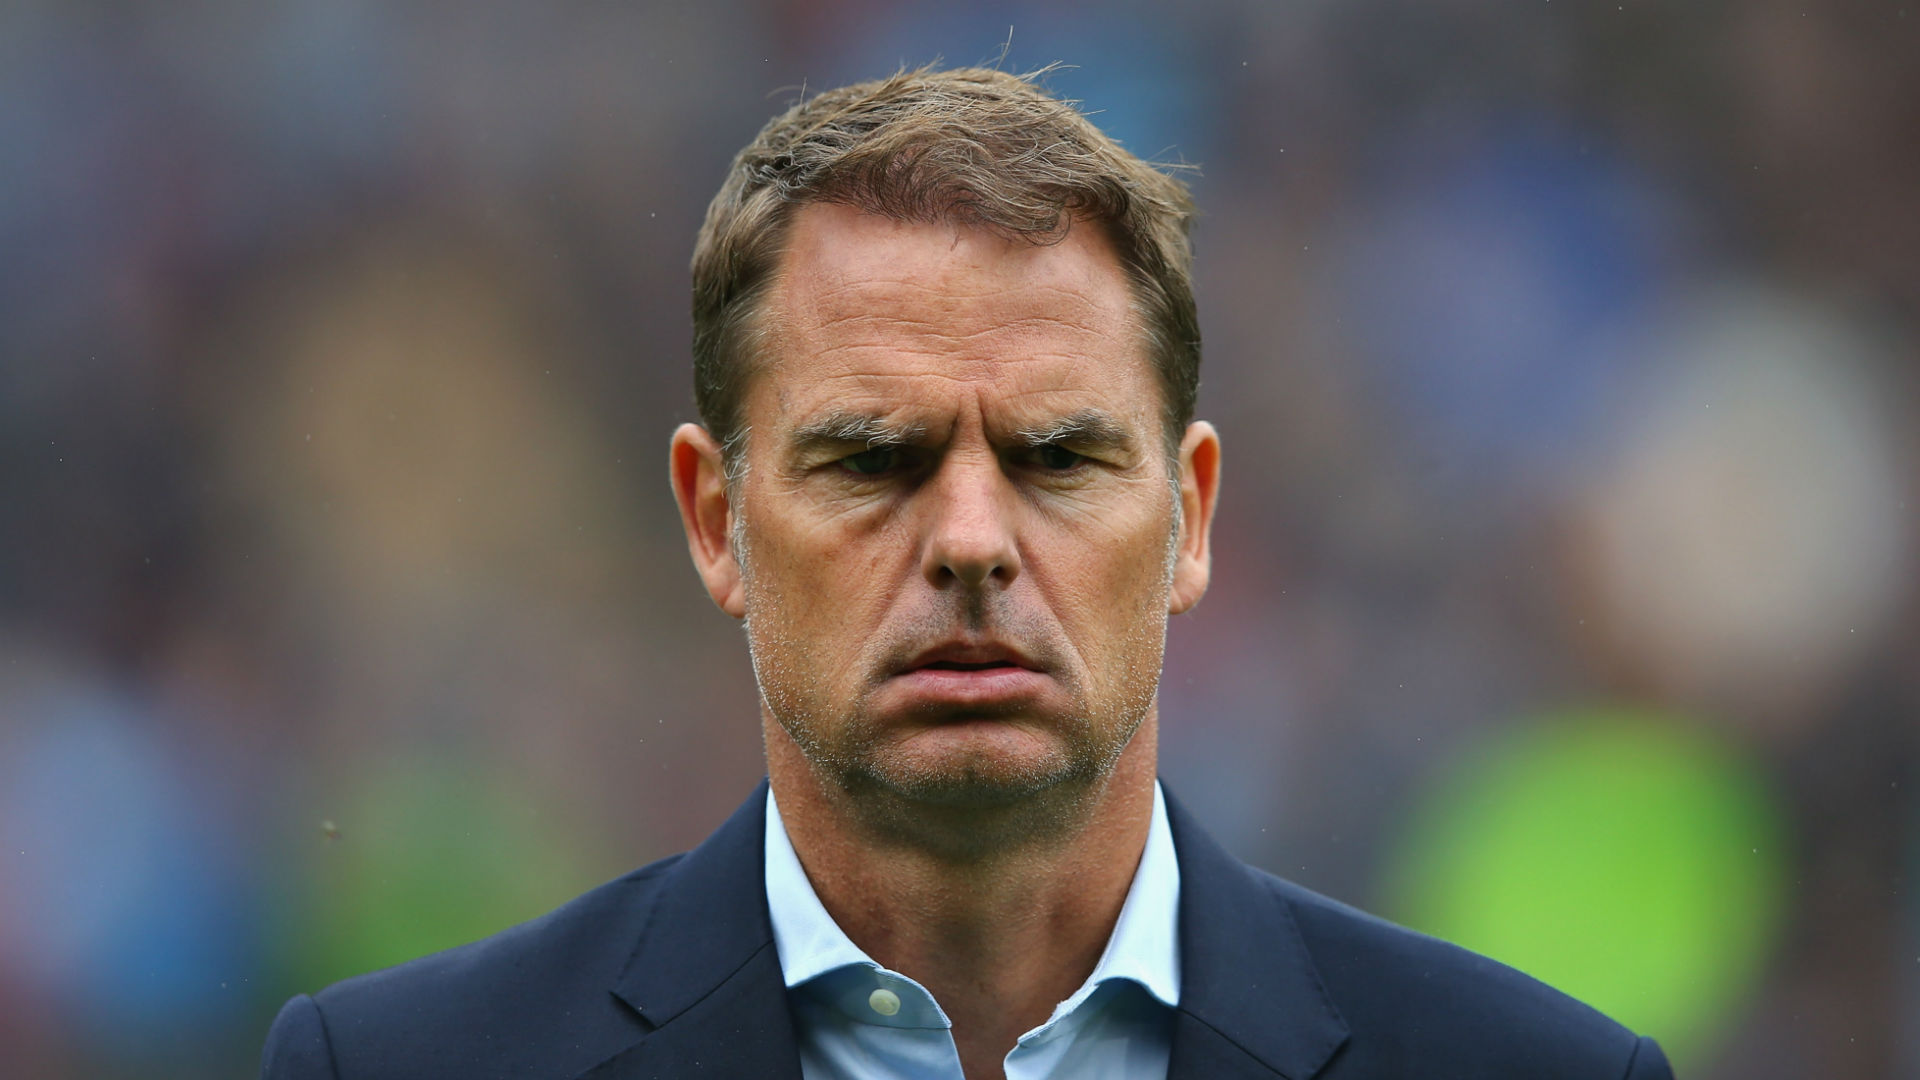 Frank de Boer backtracks on 'ridiculous' equal pay comment